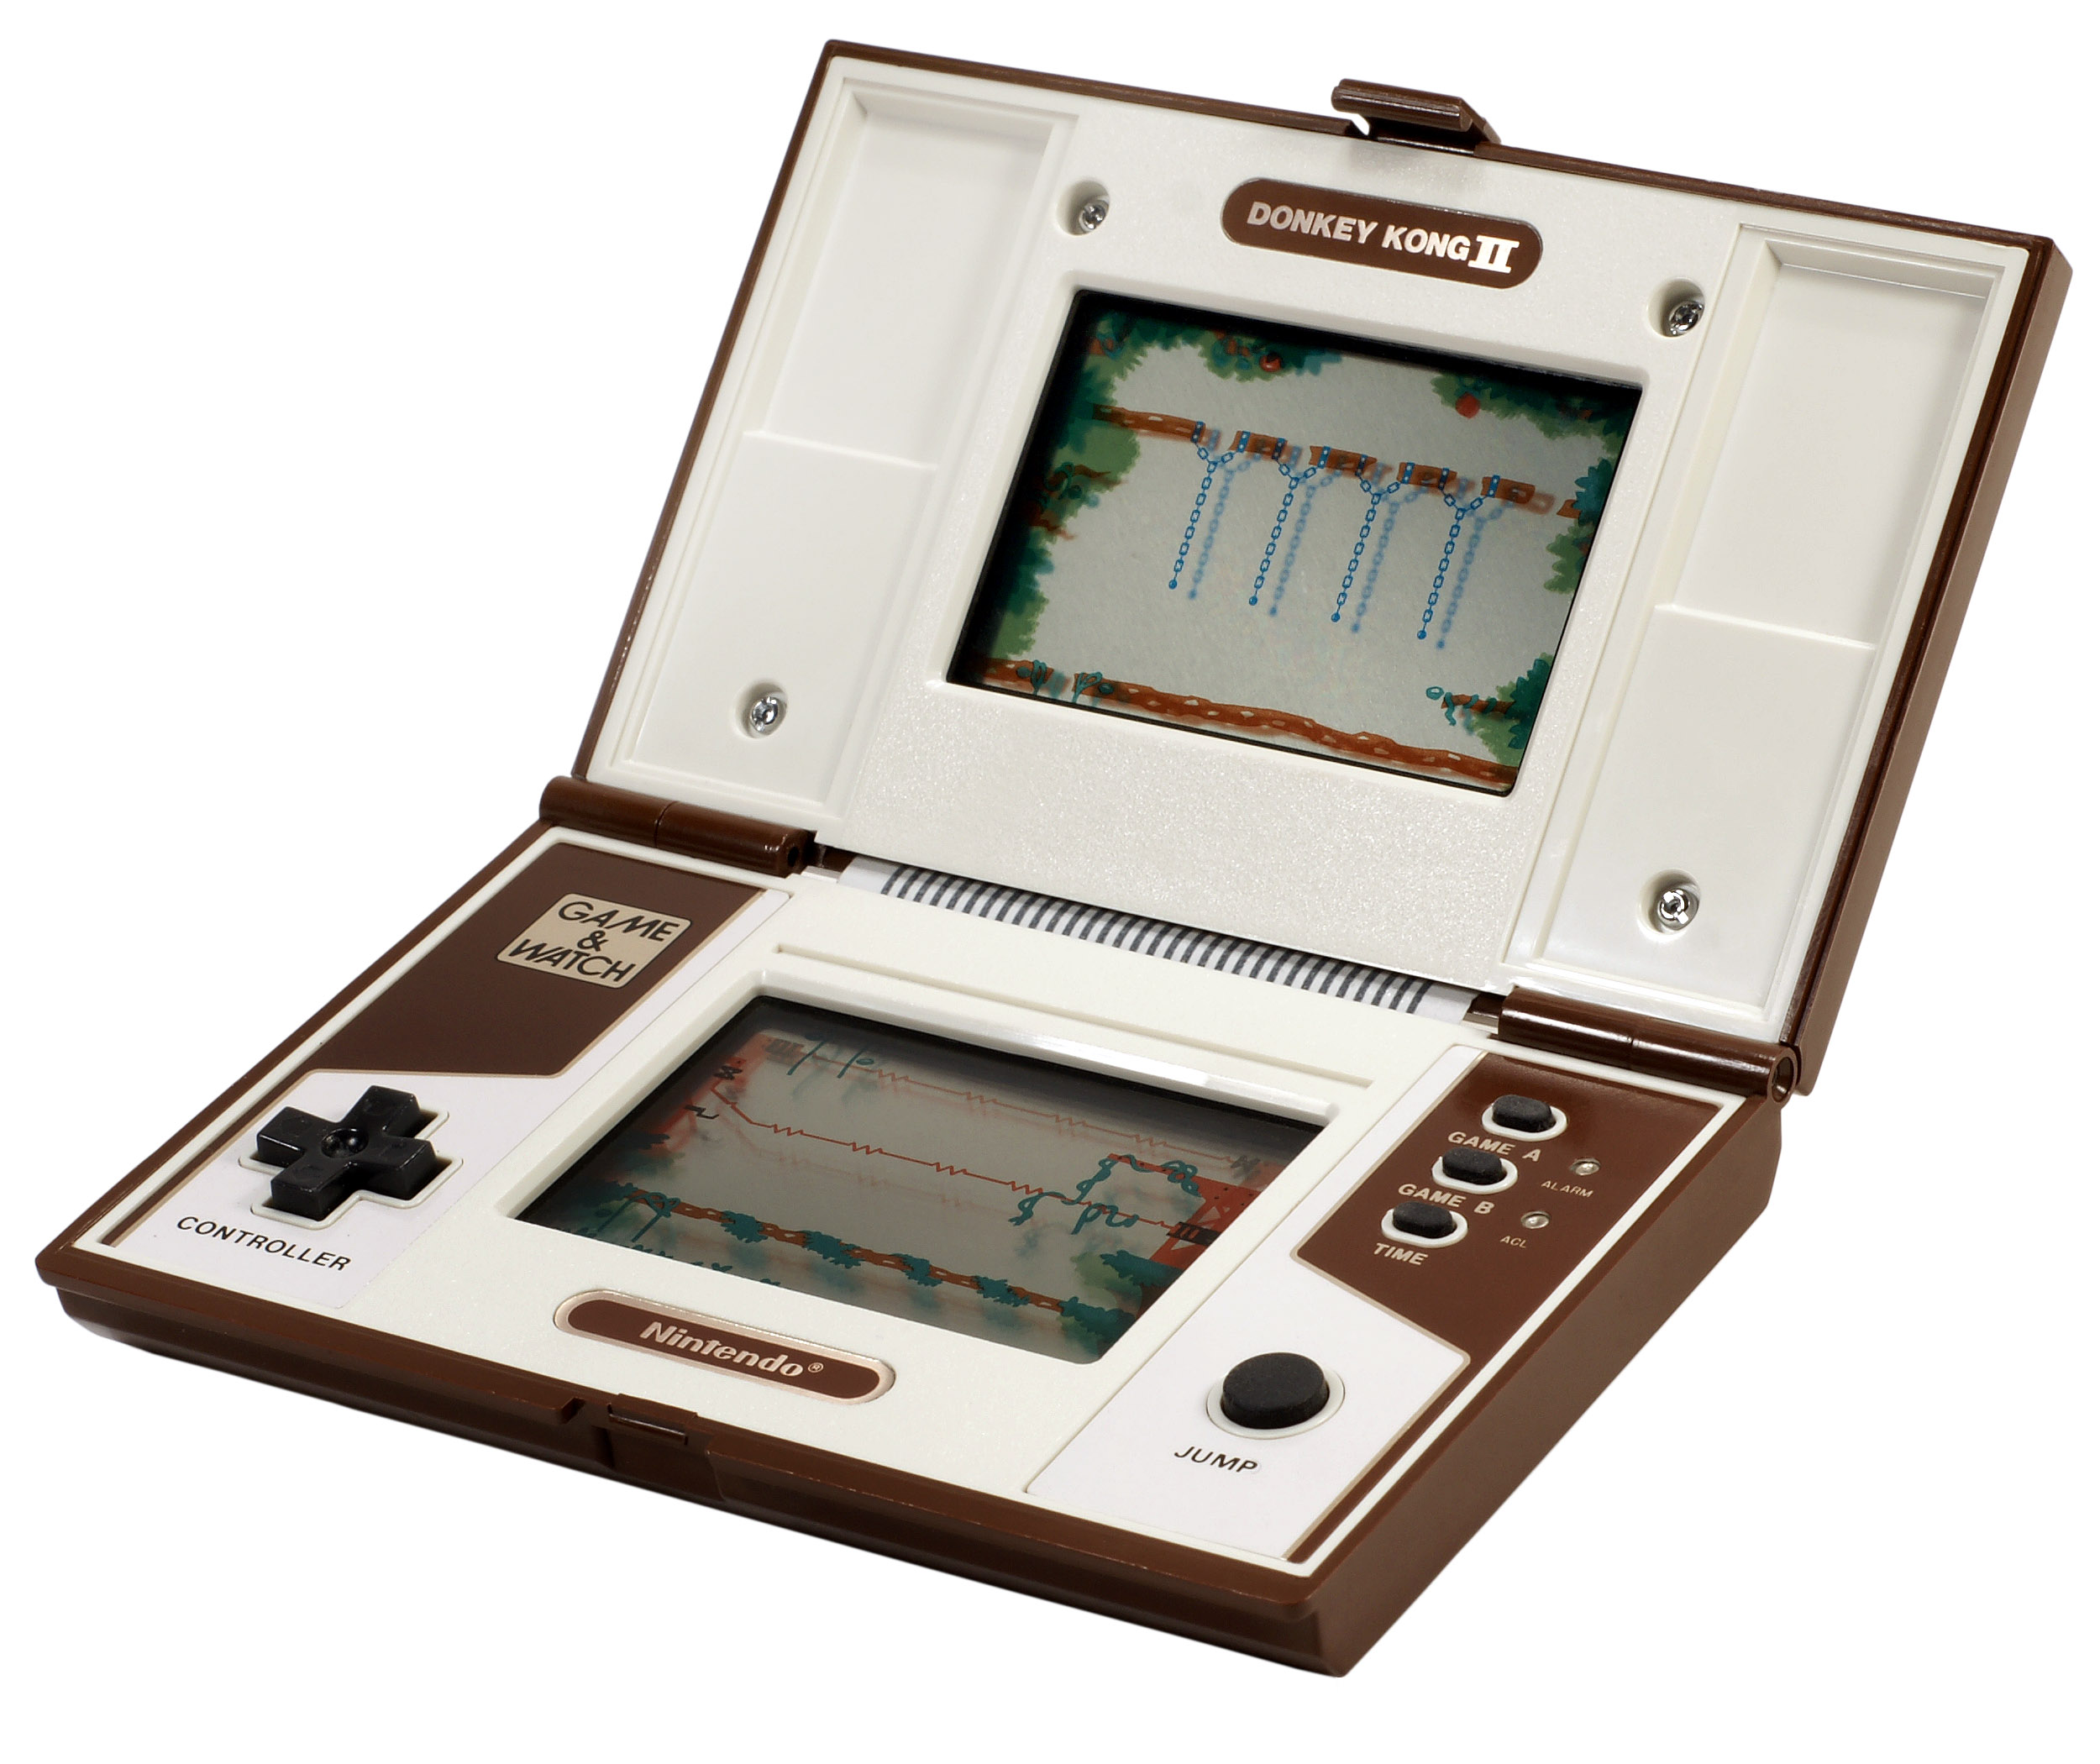 Nintendo video game consoles game watch publicscrutiny Gallery